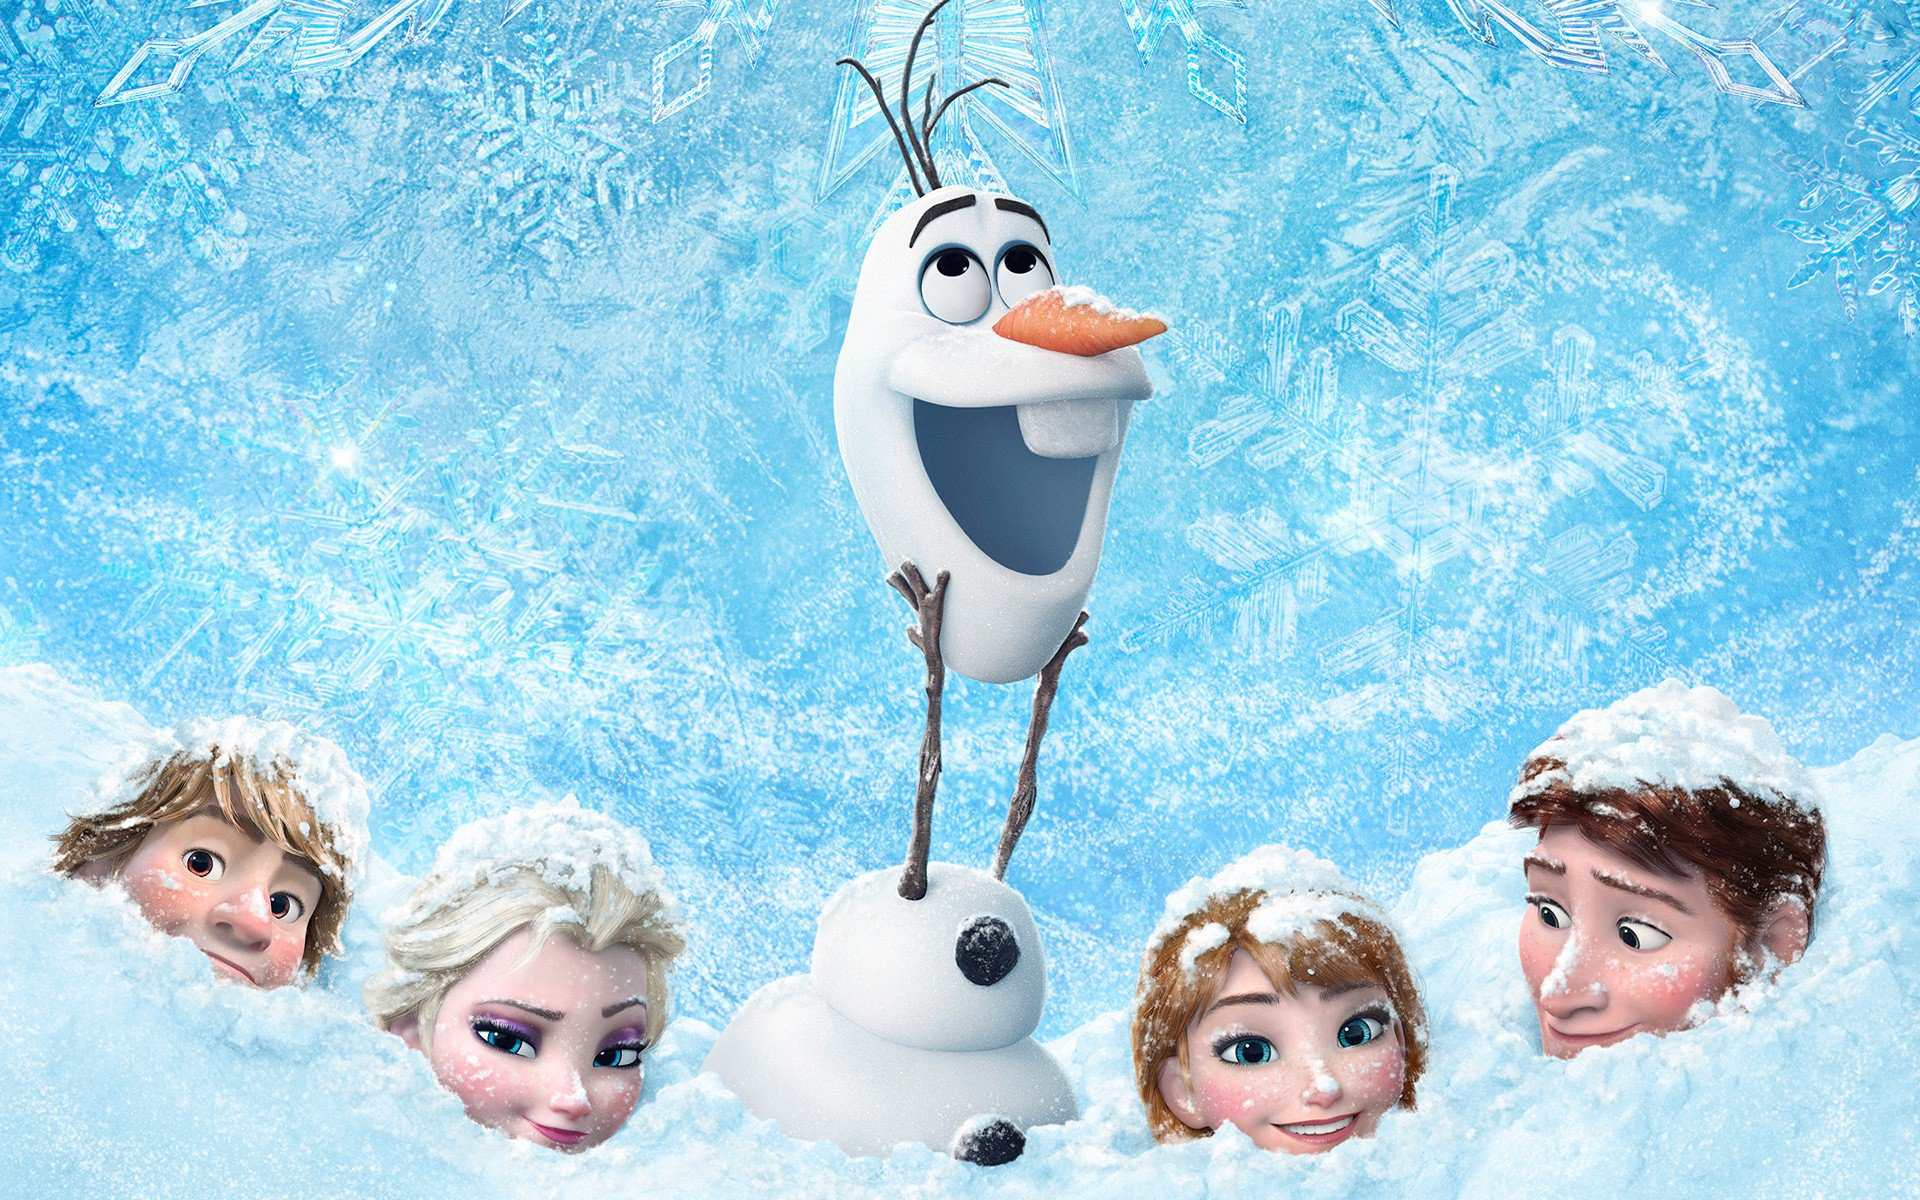 Frozen hd movies 4k wallpapers images backgrounds photos and frozen voltagebd Choice Image